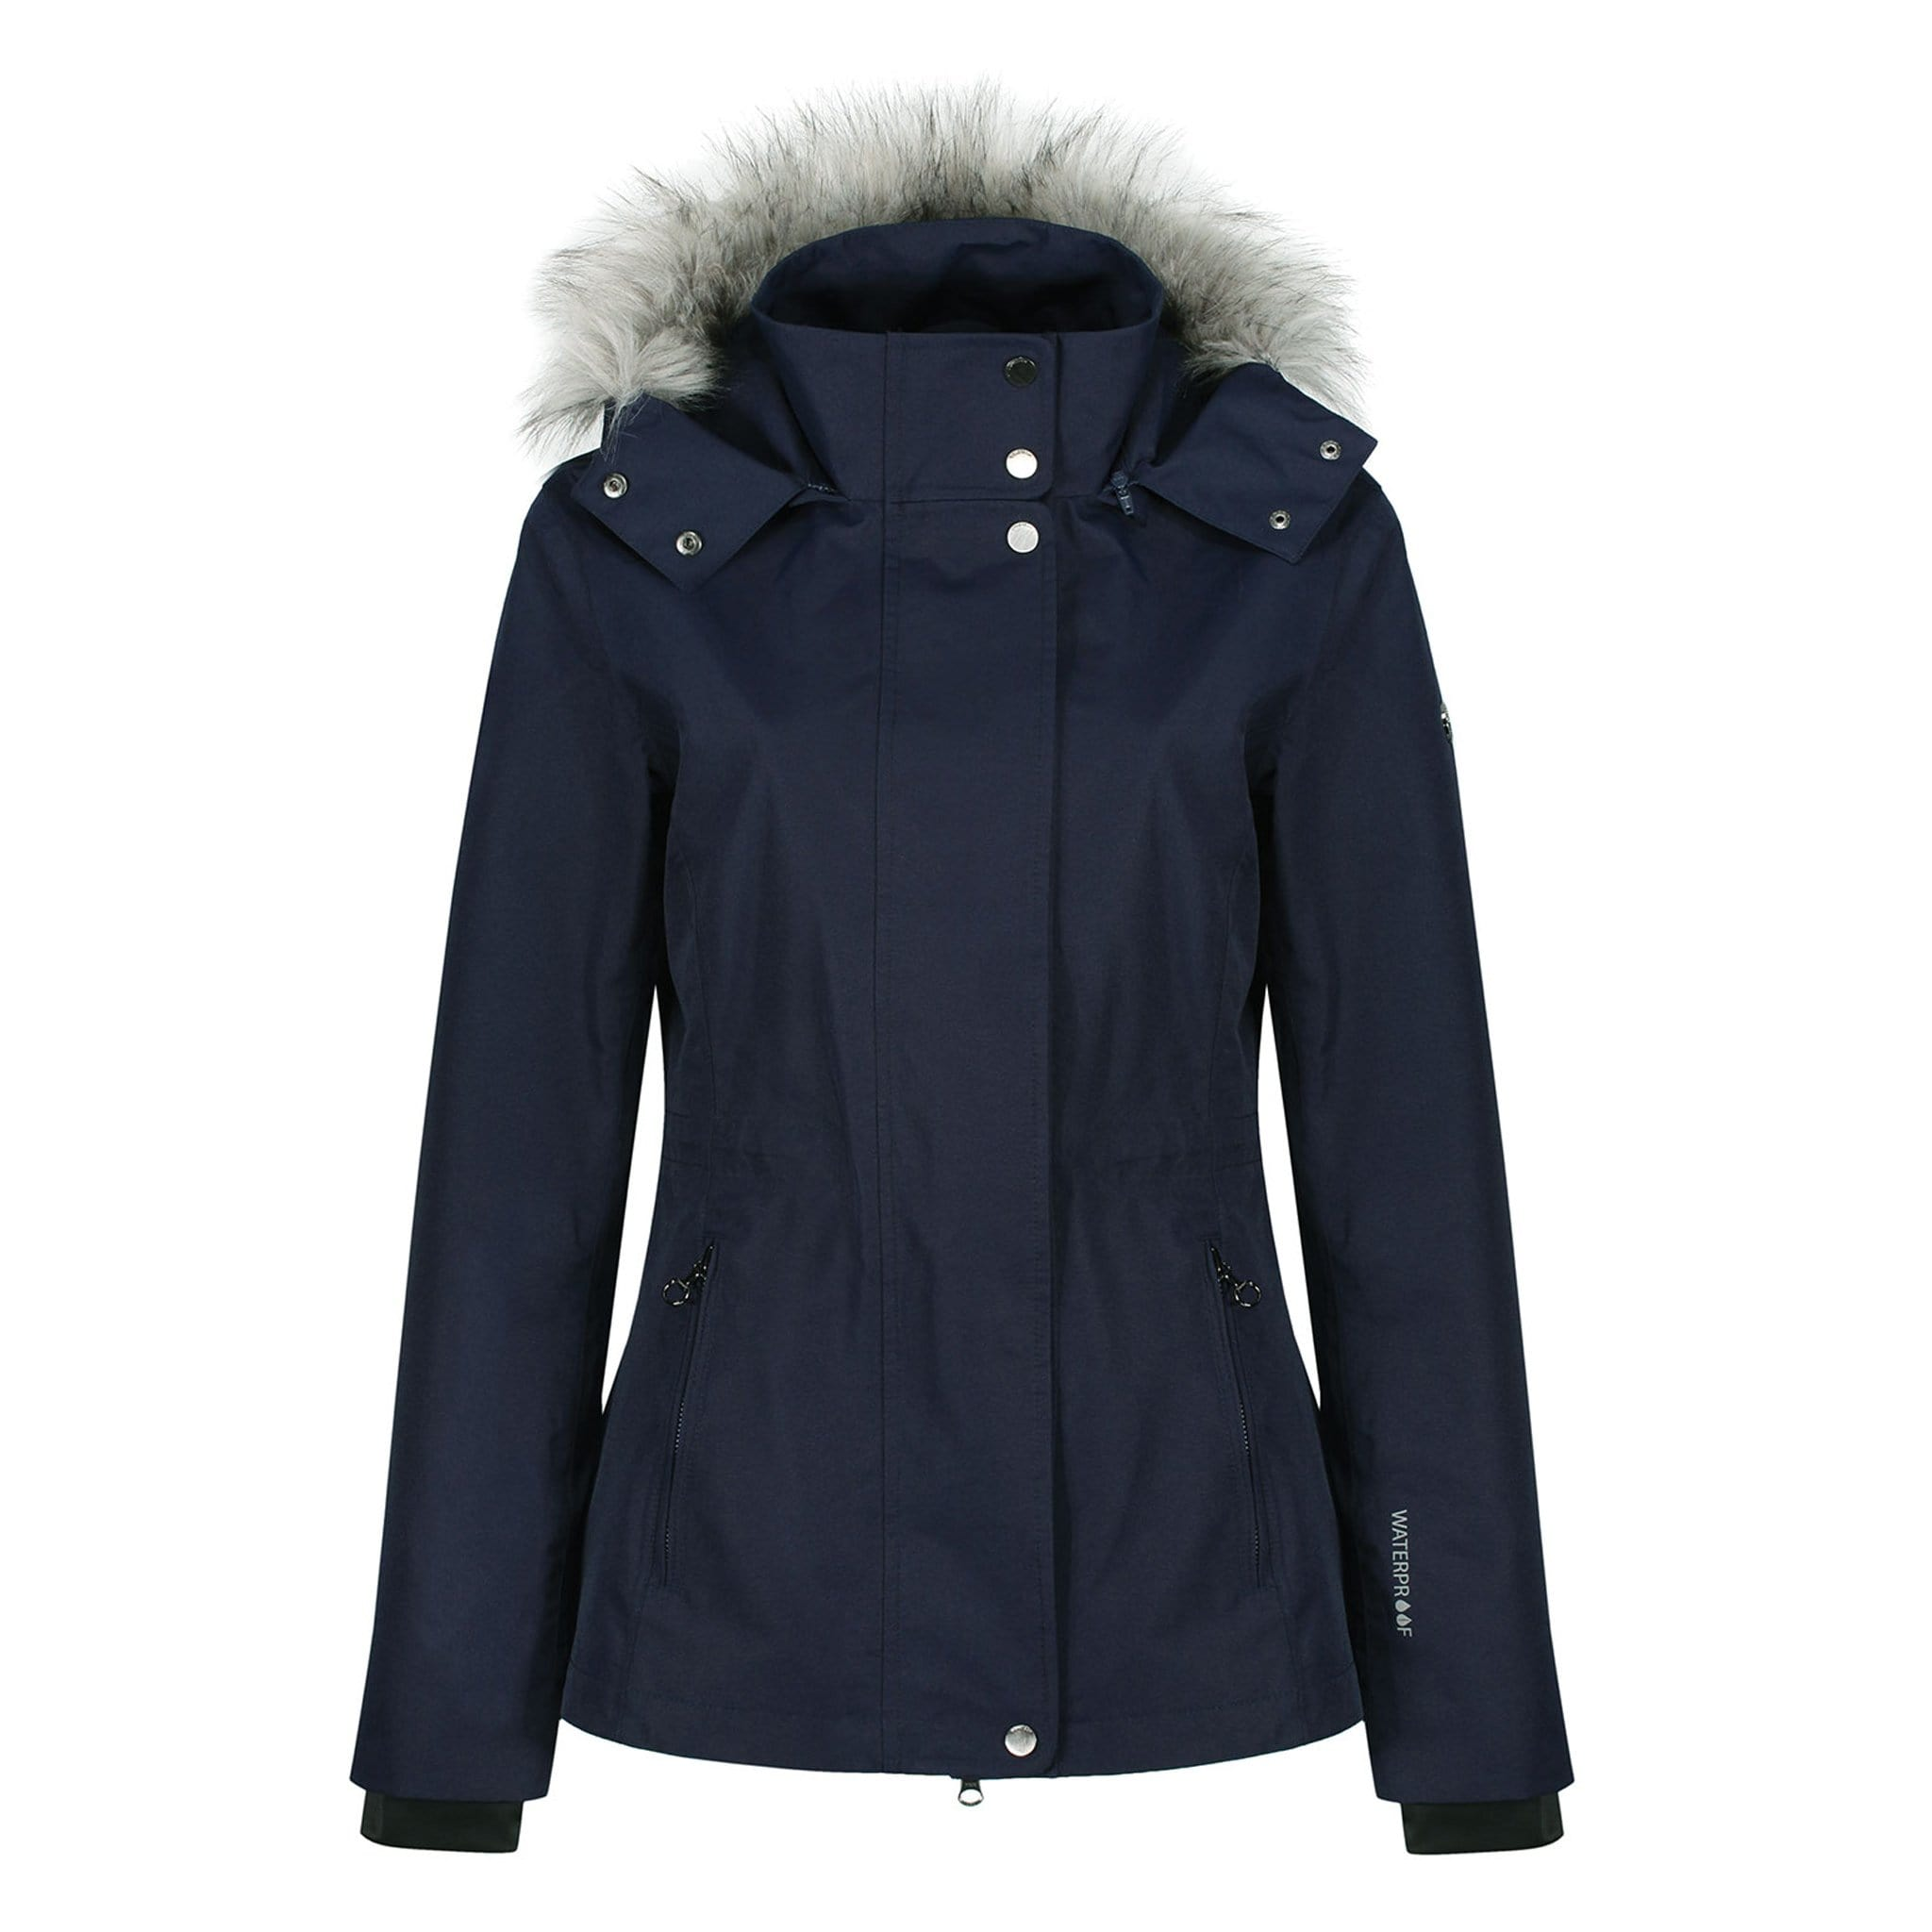 Equetech Moorland Waterproof Jacket MWJ Navy Front View